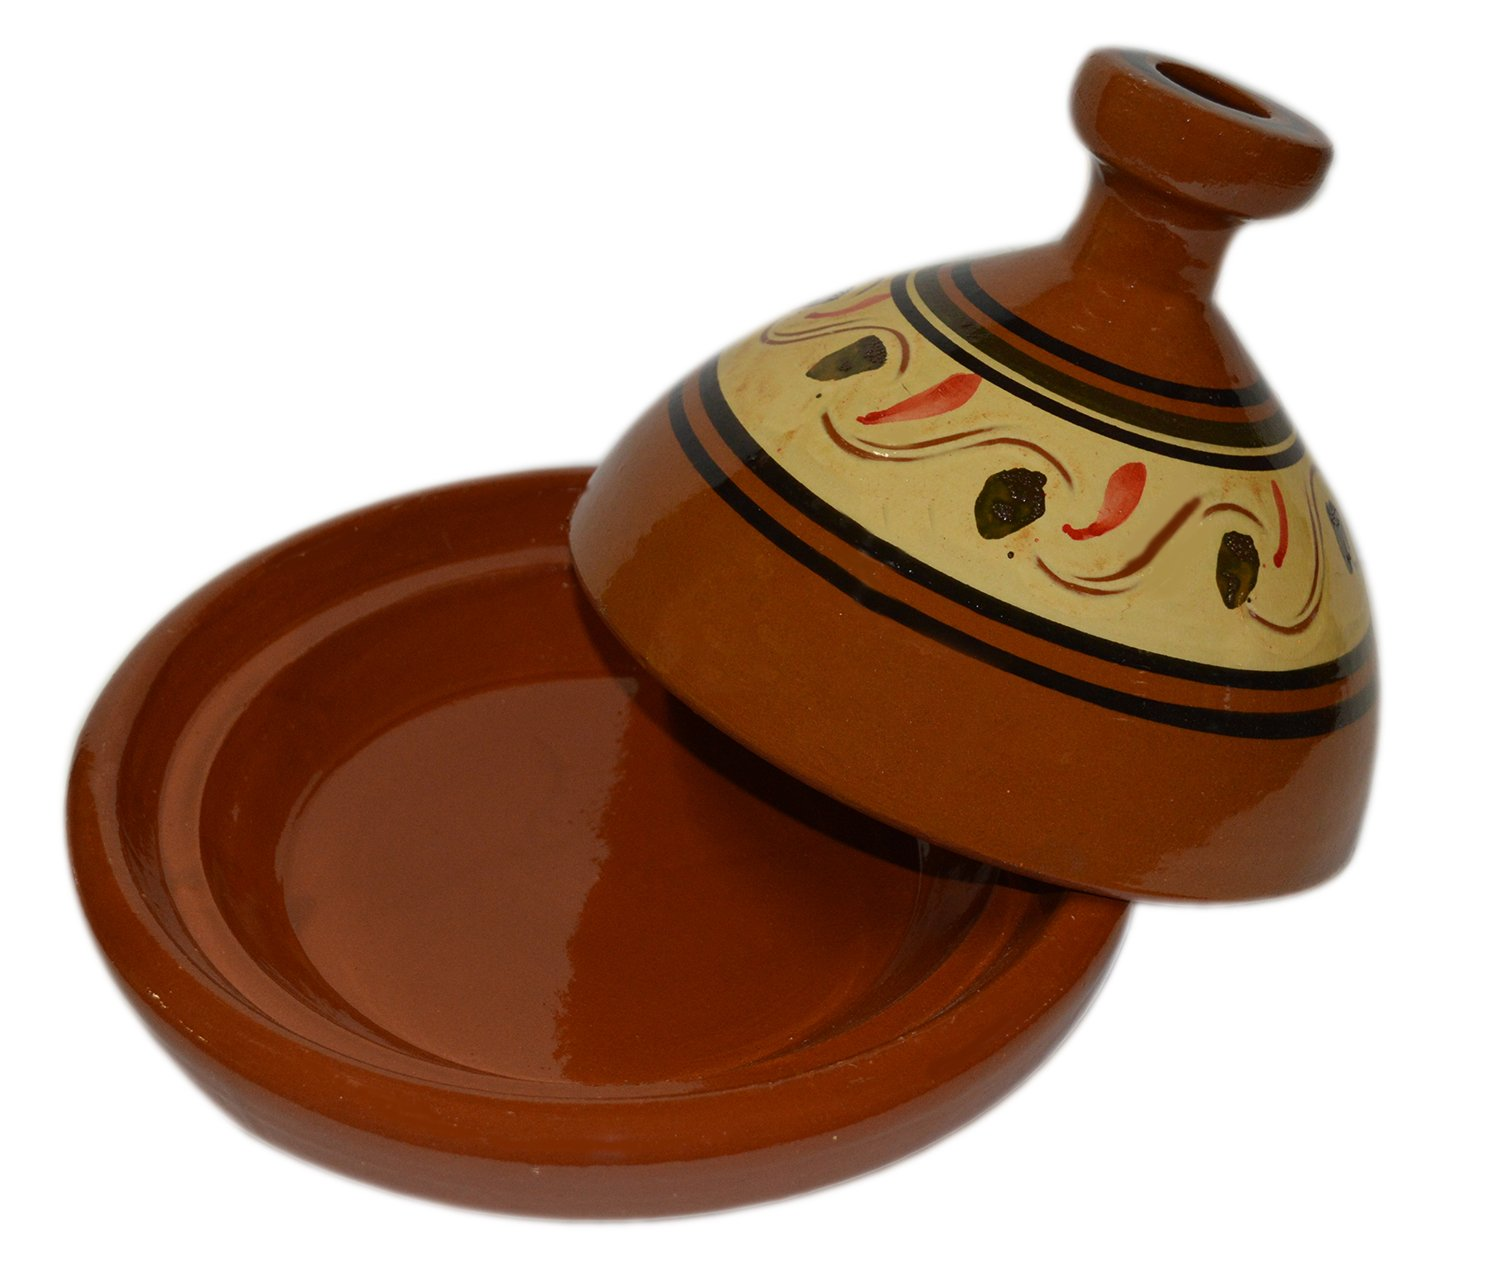 Moroccan Medium Simple Cooking Tagine Lead Free by Cooking Tagines (Image #2)